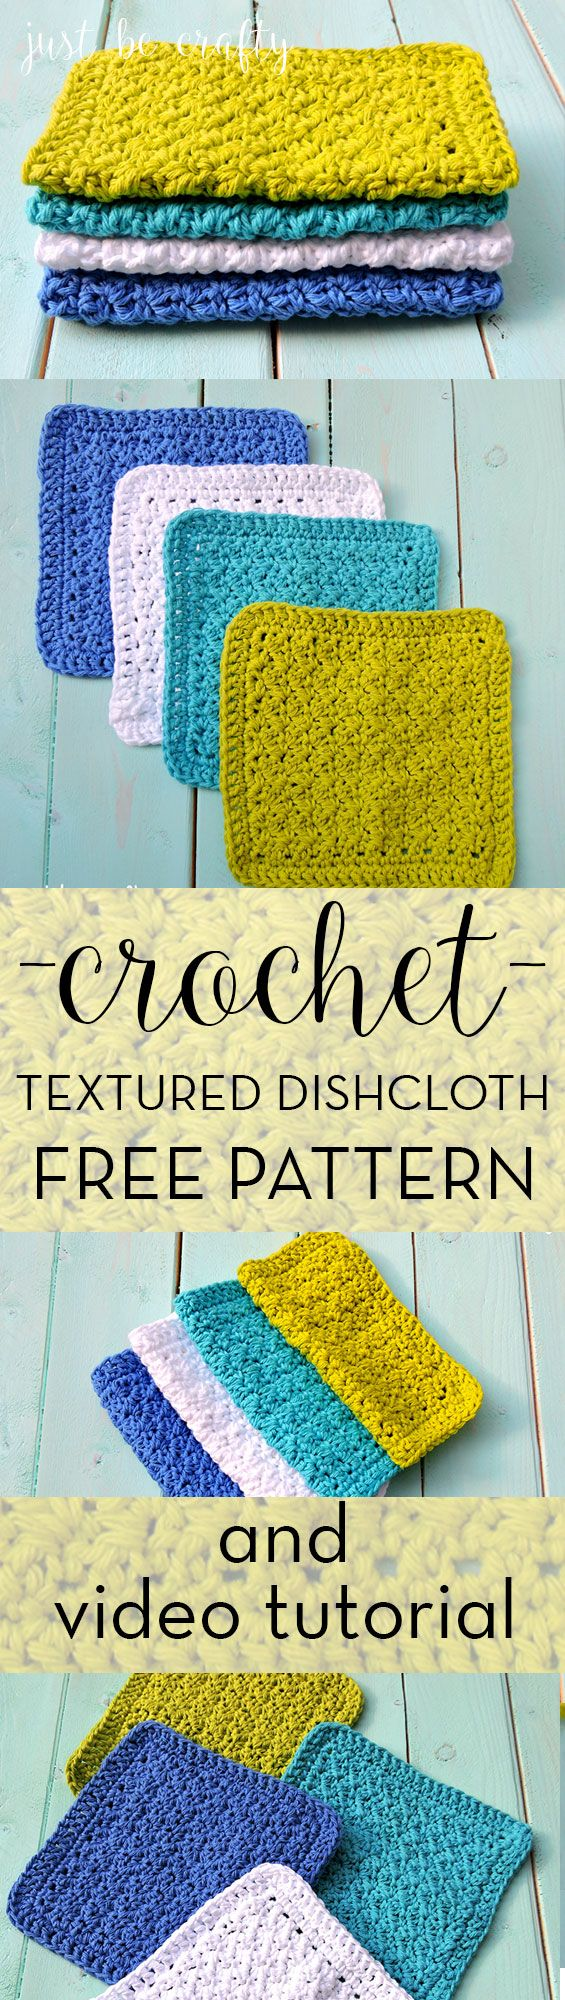 Crochet Textured Dishcloth Pattern - Free Pattern by | Crafty ...